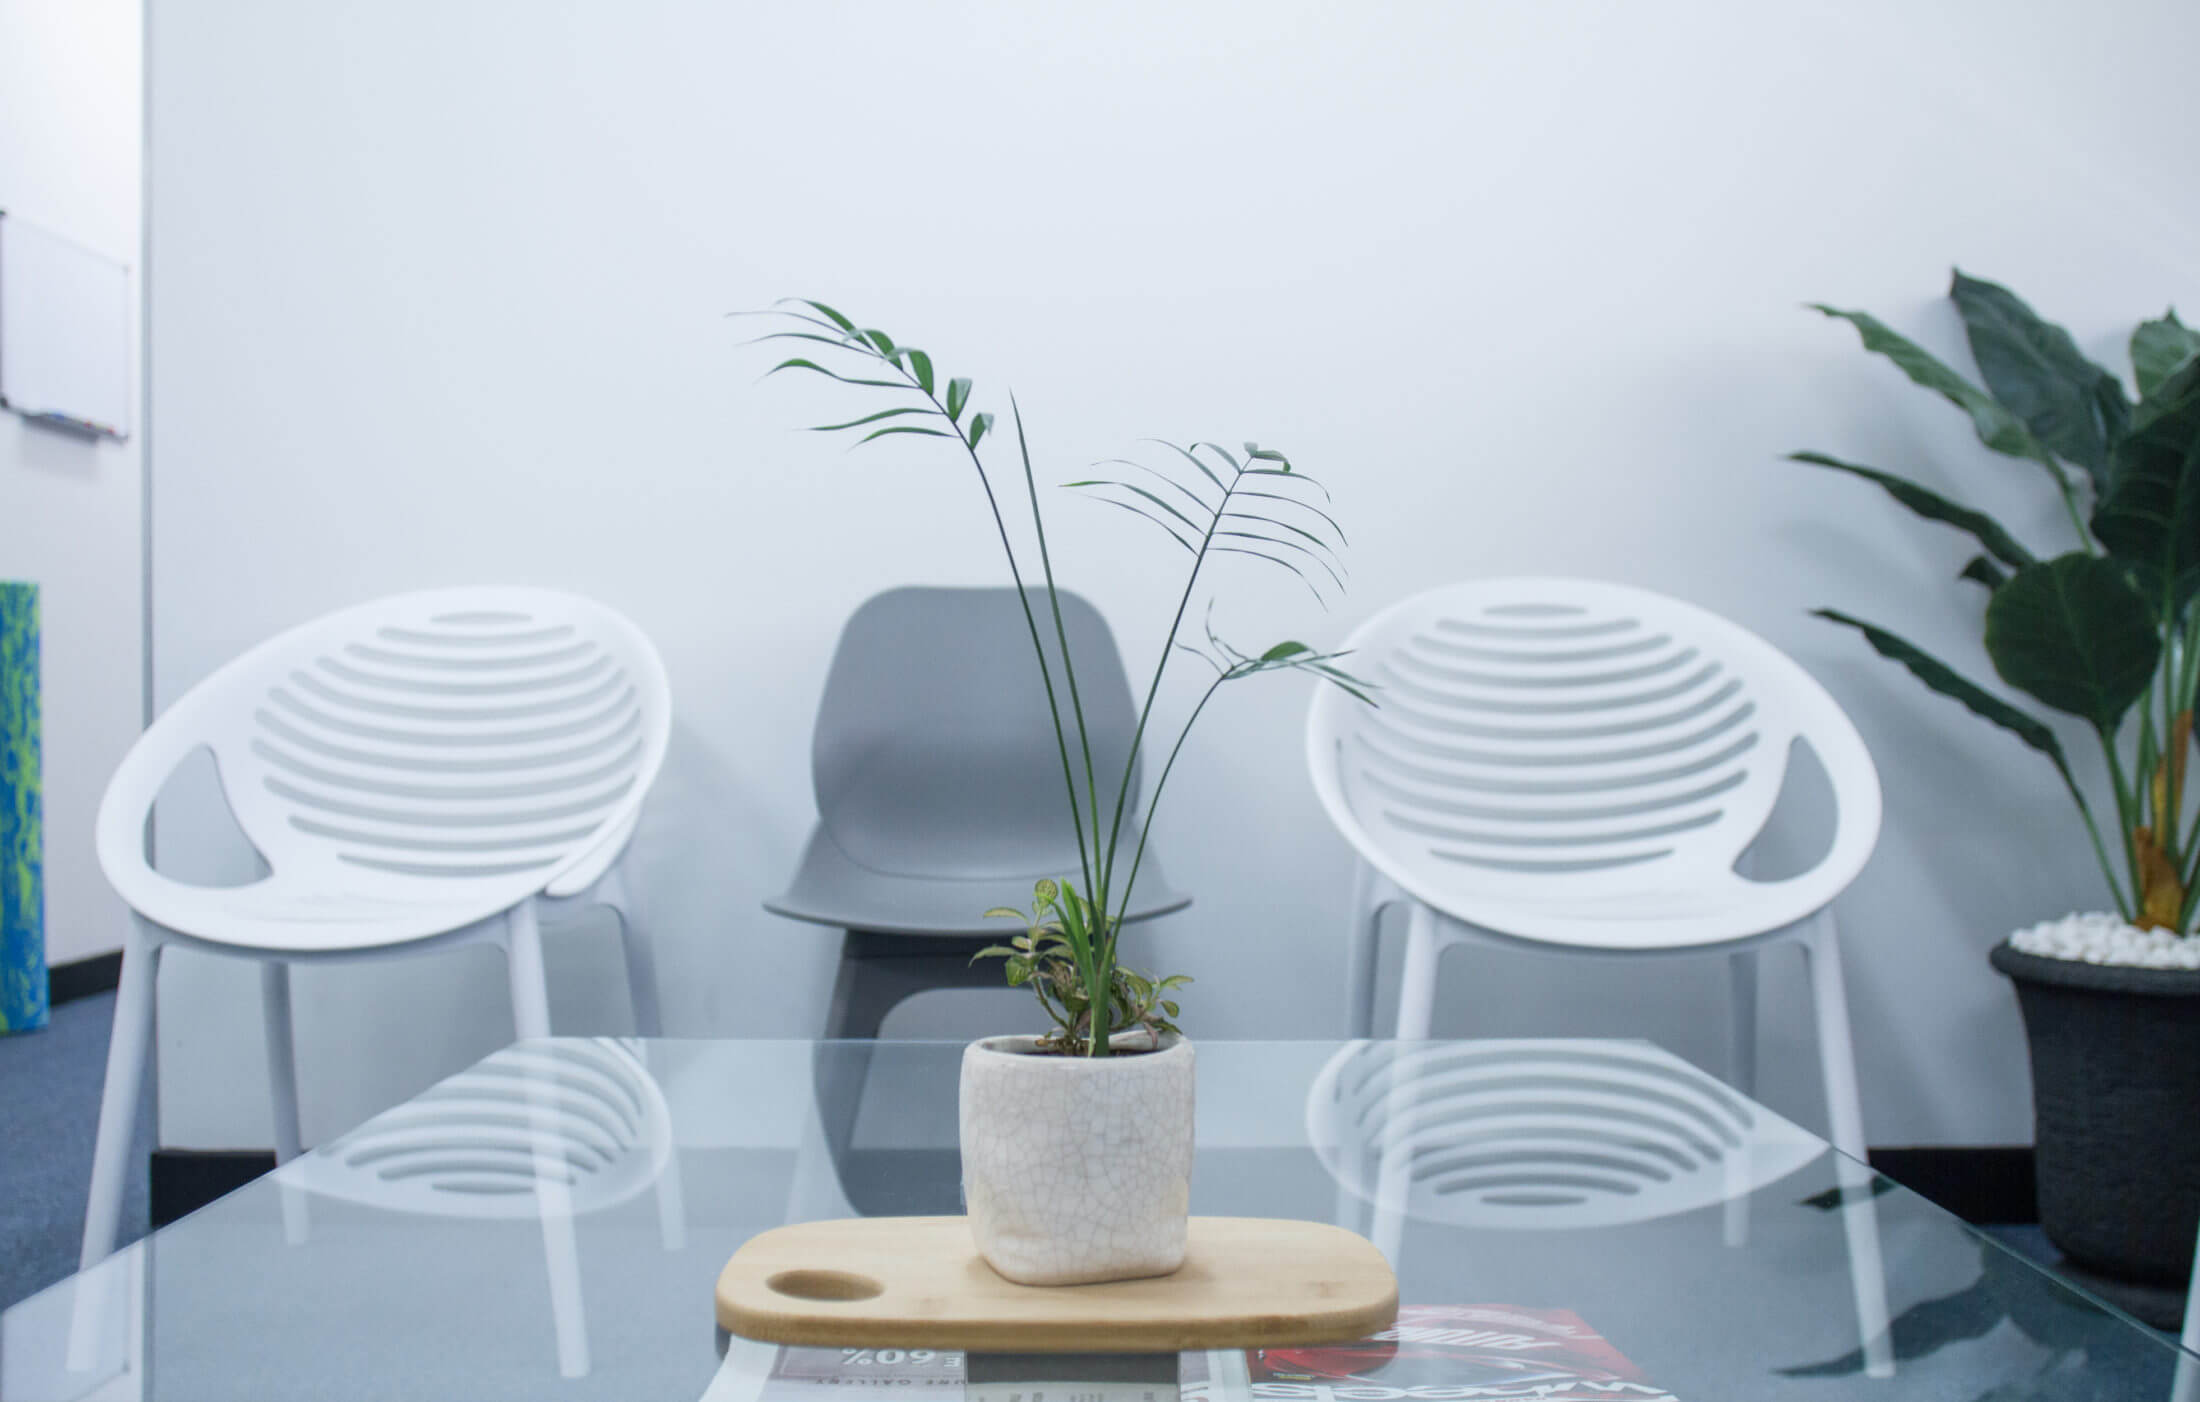 A center table with a plant as a decor in the table and three modern style chairs are situated near the wall.